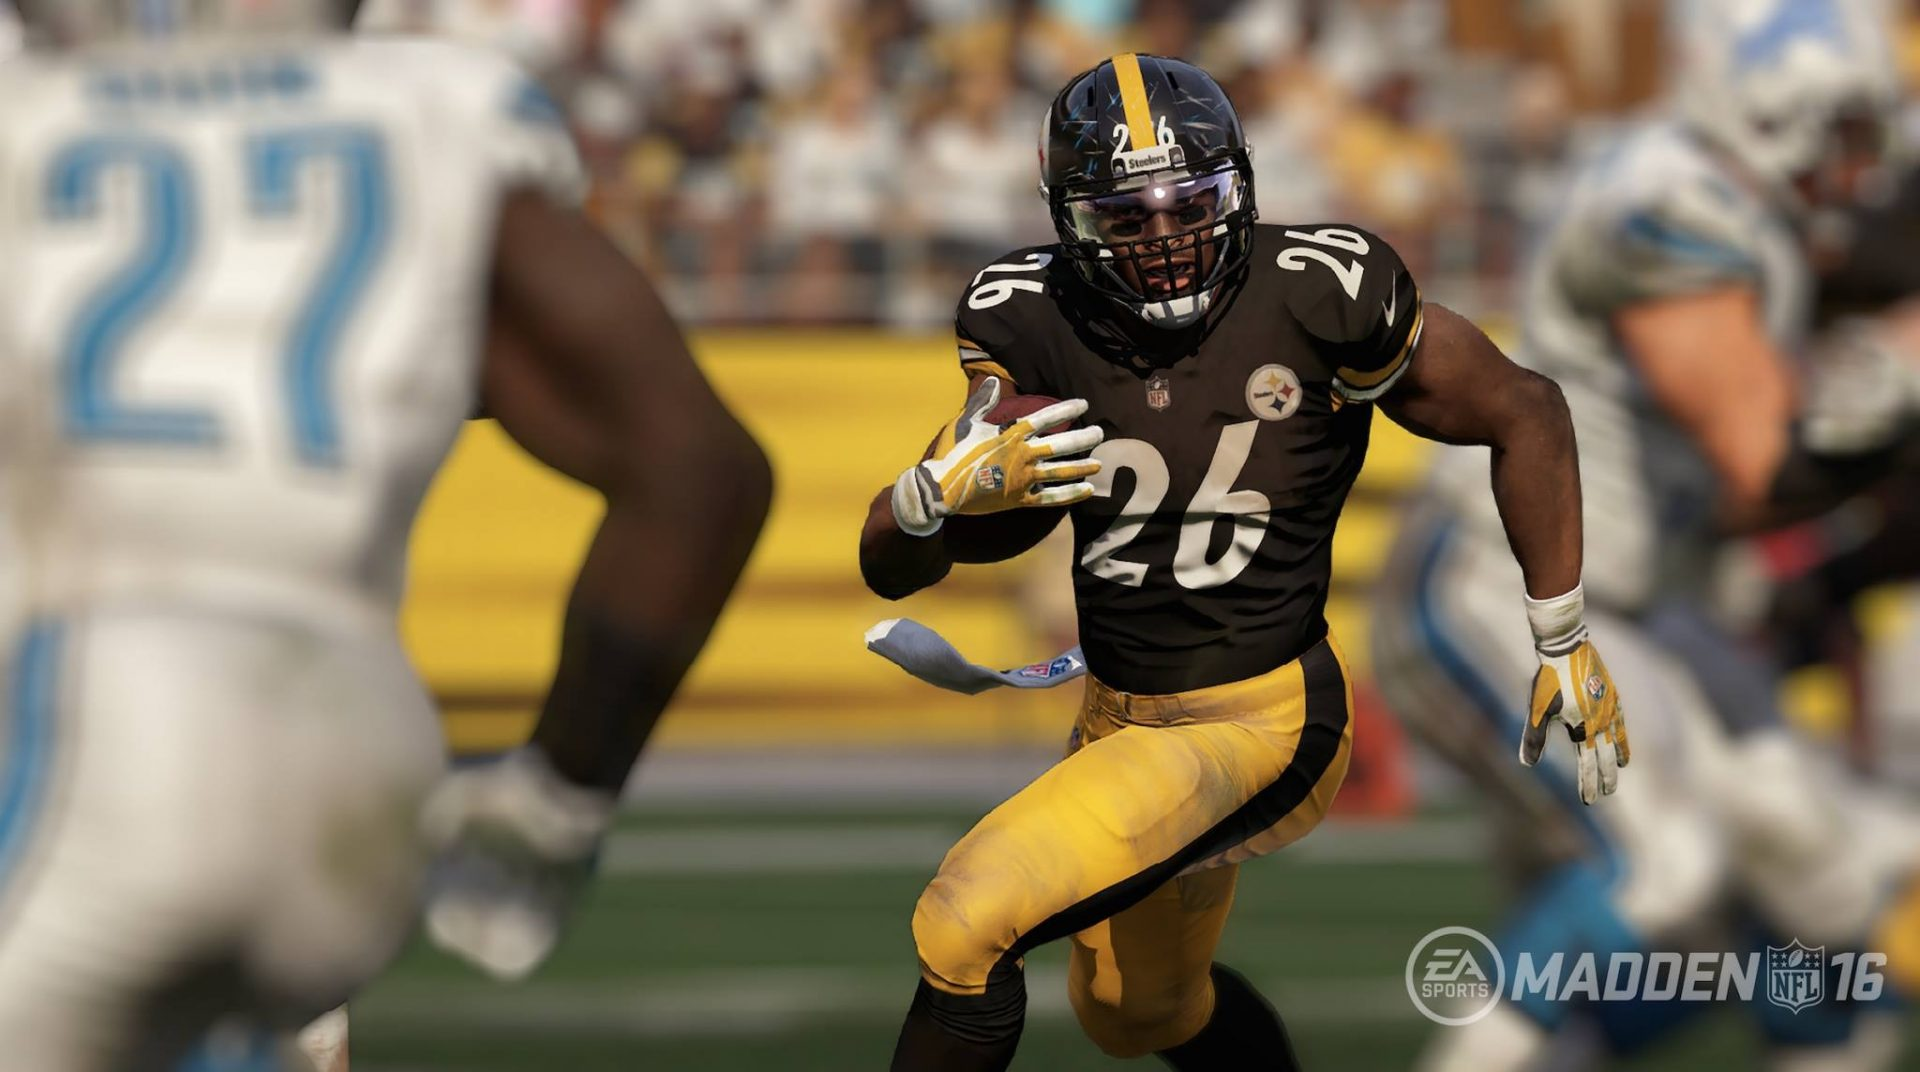 Review: Madden NFL 16